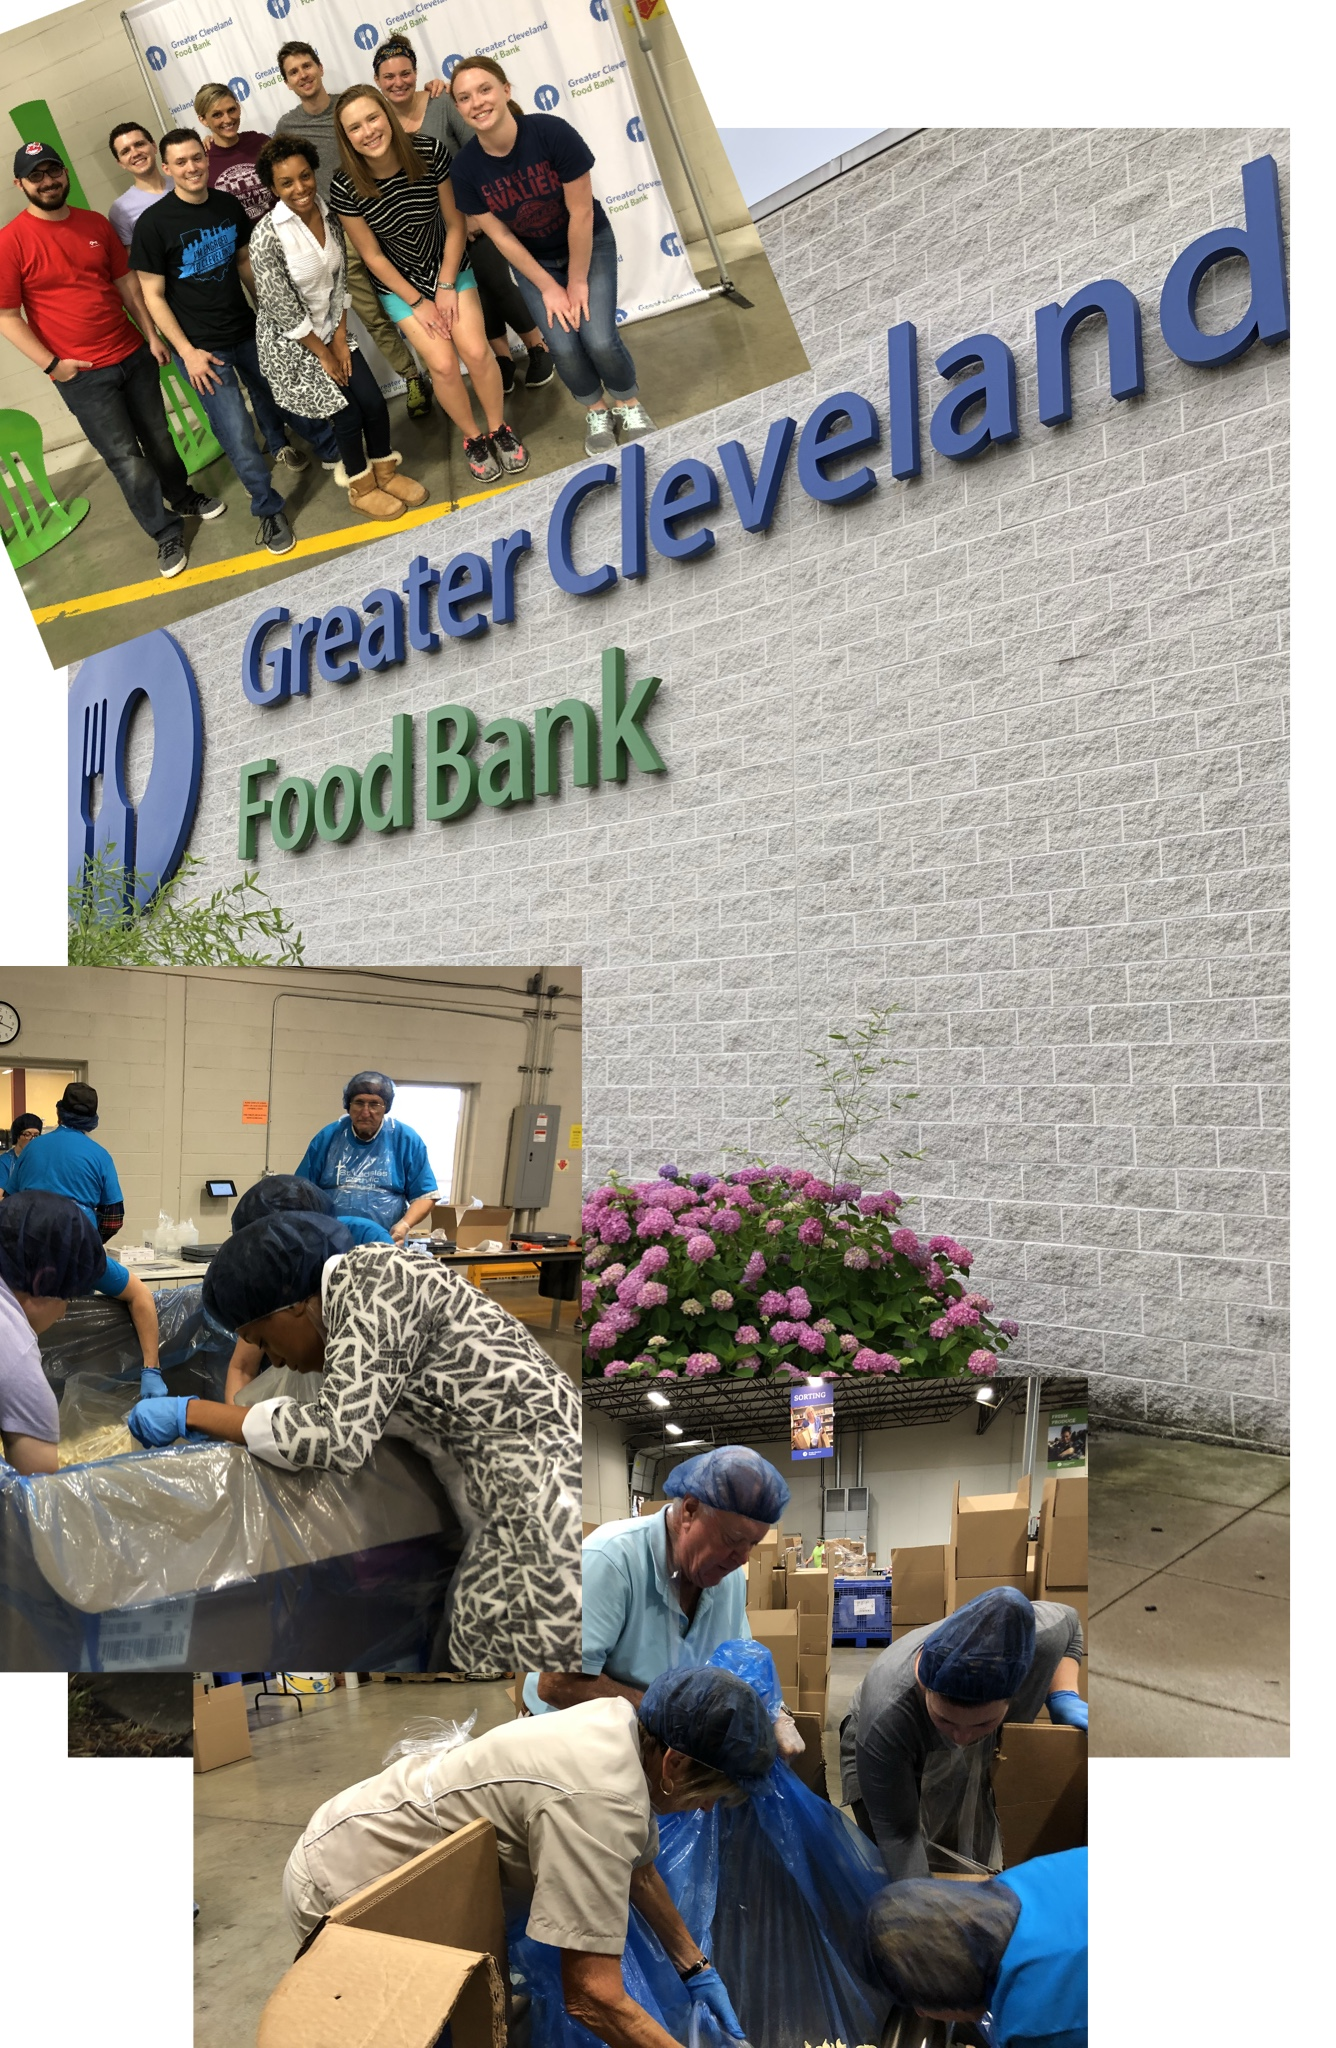 june 2018 - In partnership with Engage Cleveland, we participated and contributed in the repackaging and sorting of food that will be distributed to the poor, homeless and/ or the hungry.The Greater Cleveland Food Bank is the largest hunger relief organization in Northeast Ohio having provided 55 million meals in 2017 to hungry people in Cuyahoga, Ashtabula, Geauga, Lake, Ashland and Richland counties.There mission is to ensure that everyone in our communities has the nutritious food they need everyday.The Food Bank operates a community food distribution center, providing food and other critical grocery products annually to more than 940 local food pantries, hot meal programs, shelters, mobile pantries, programs for the elderly and other nonprofit agencies.To learn more about the Cleveland Food Bank, Click below!